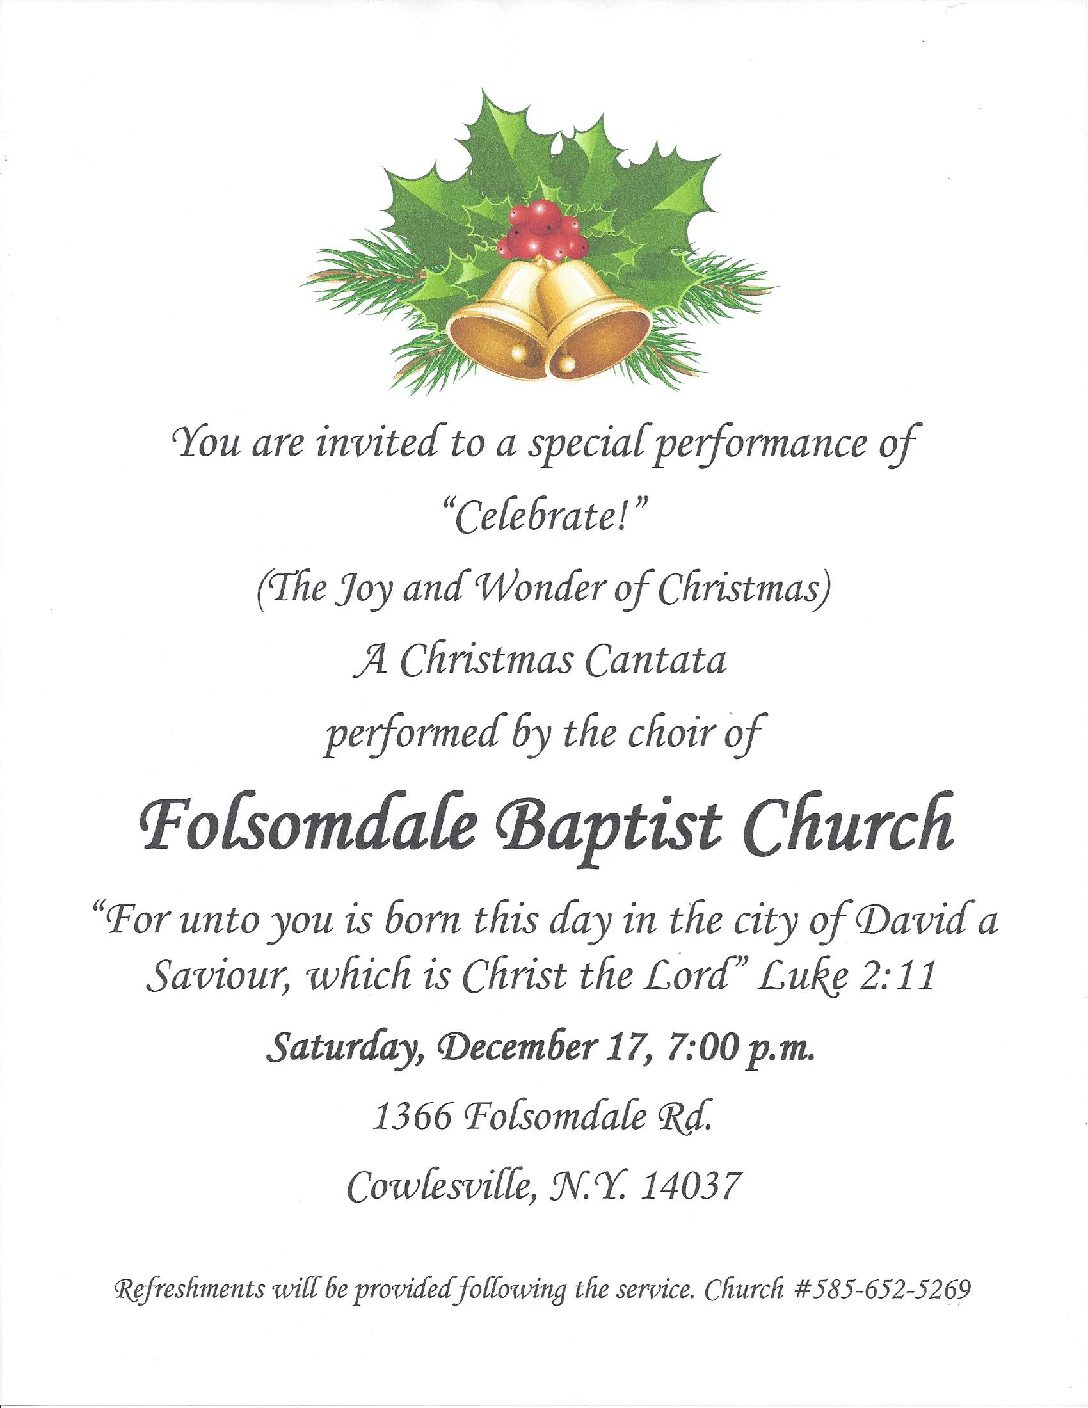 Concert at Folsomdale Baptist Church